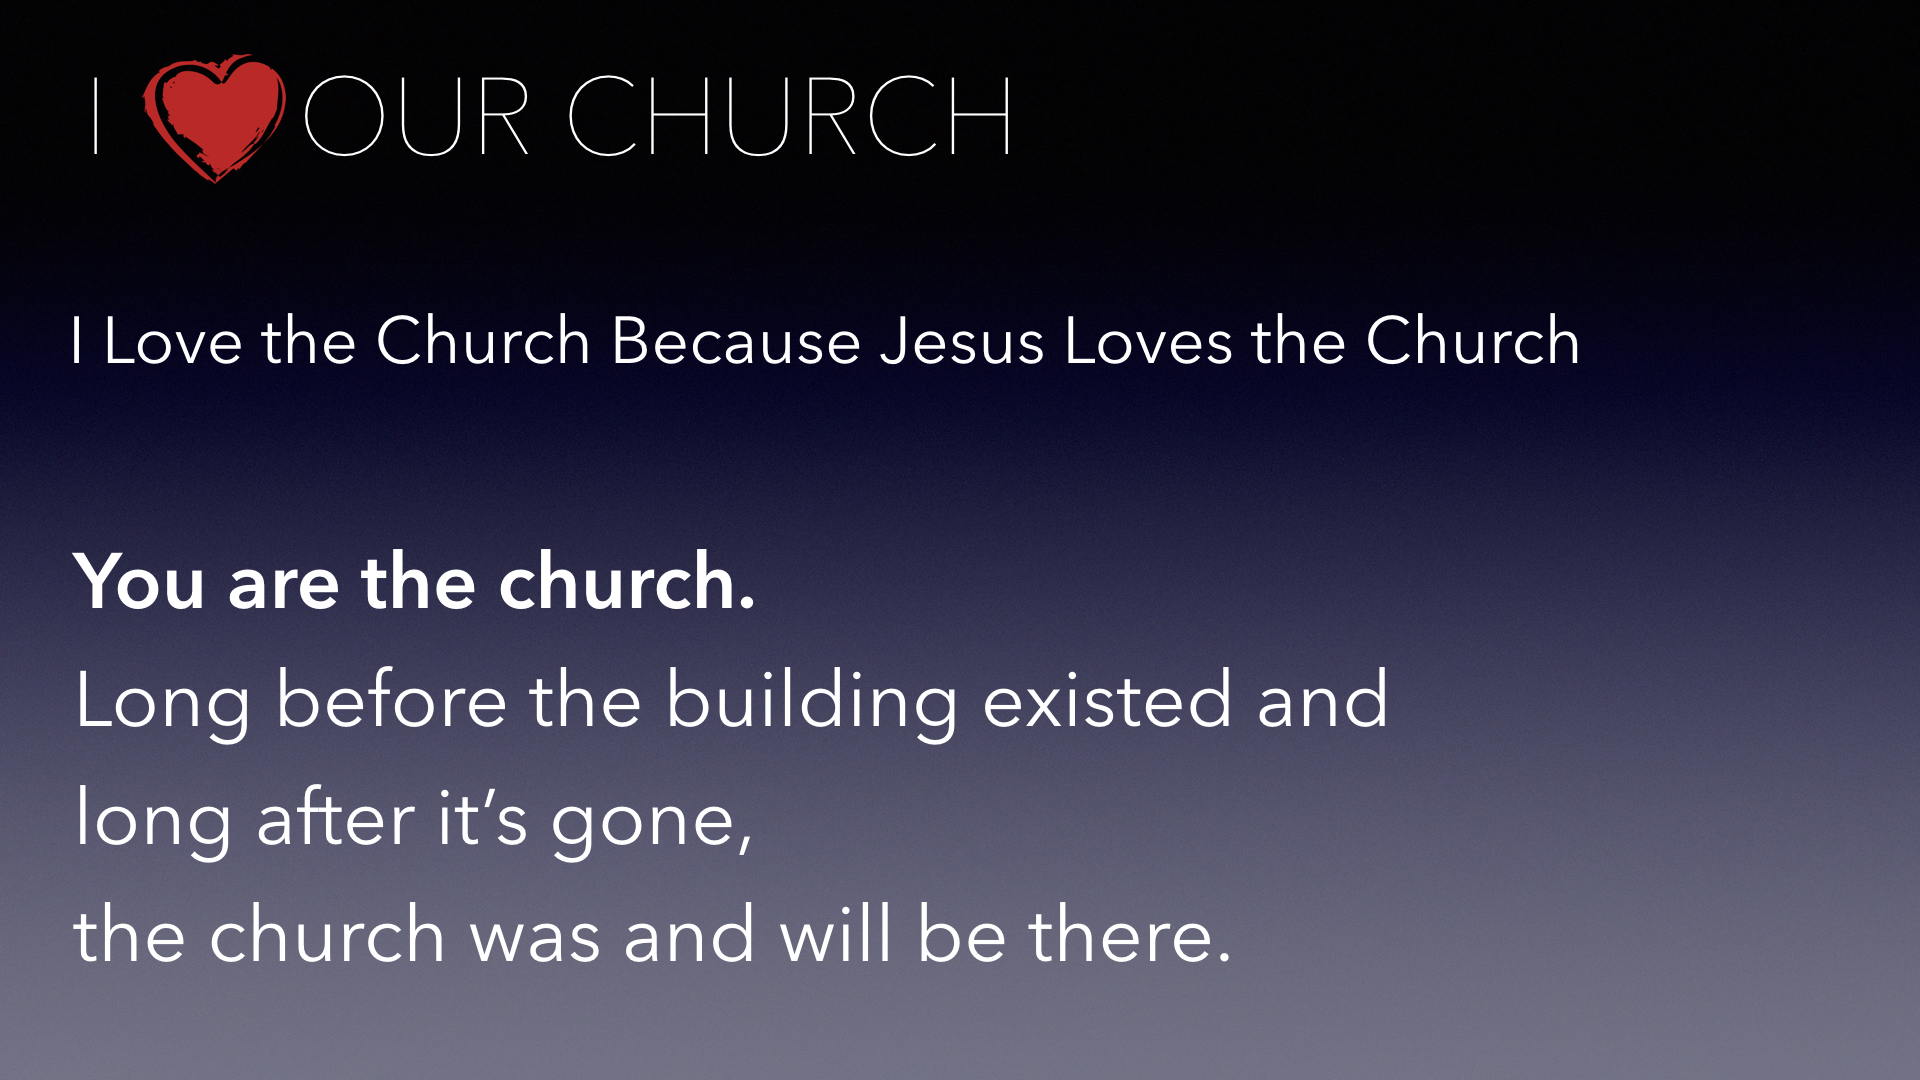 i-love-our-church-005